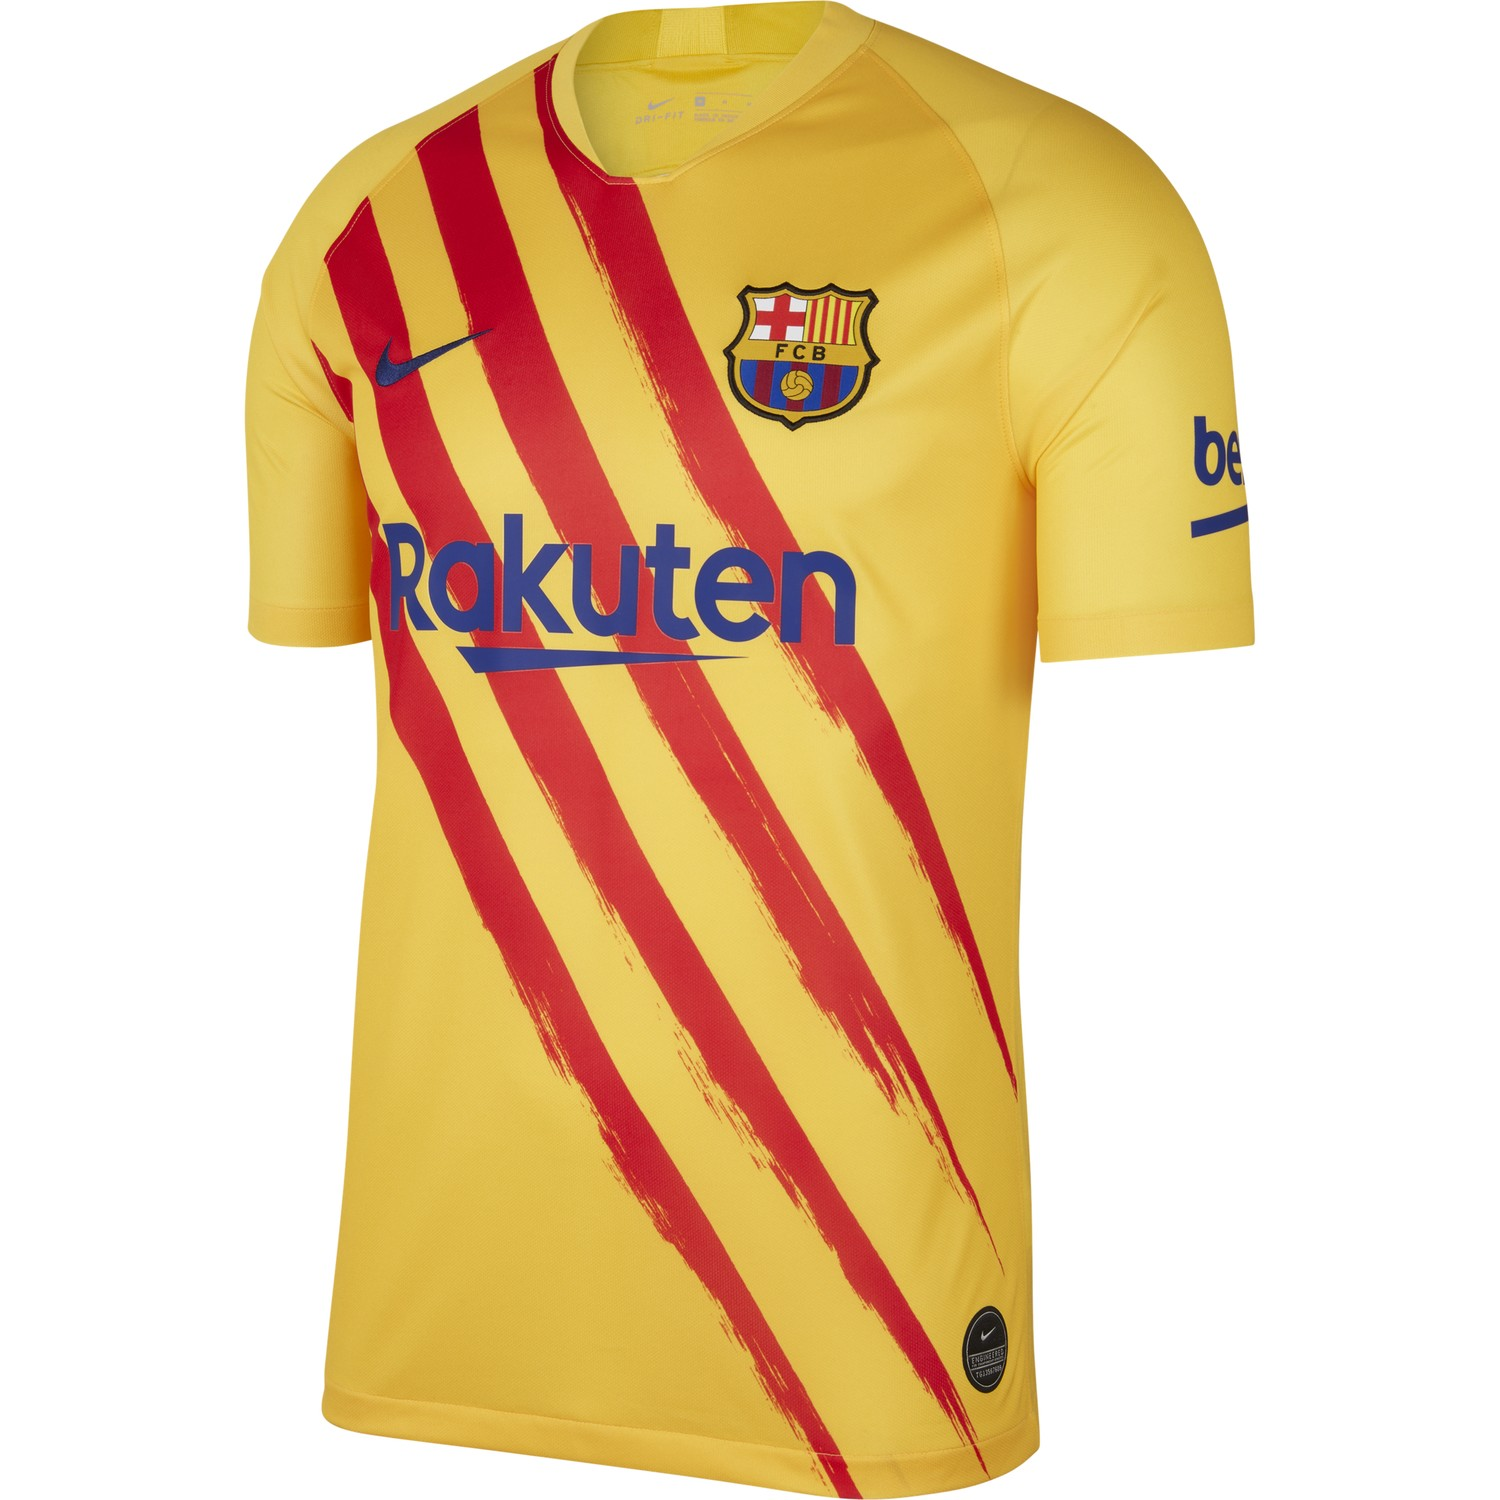 Maillot FC Barcelone Collector 120 ans 201920